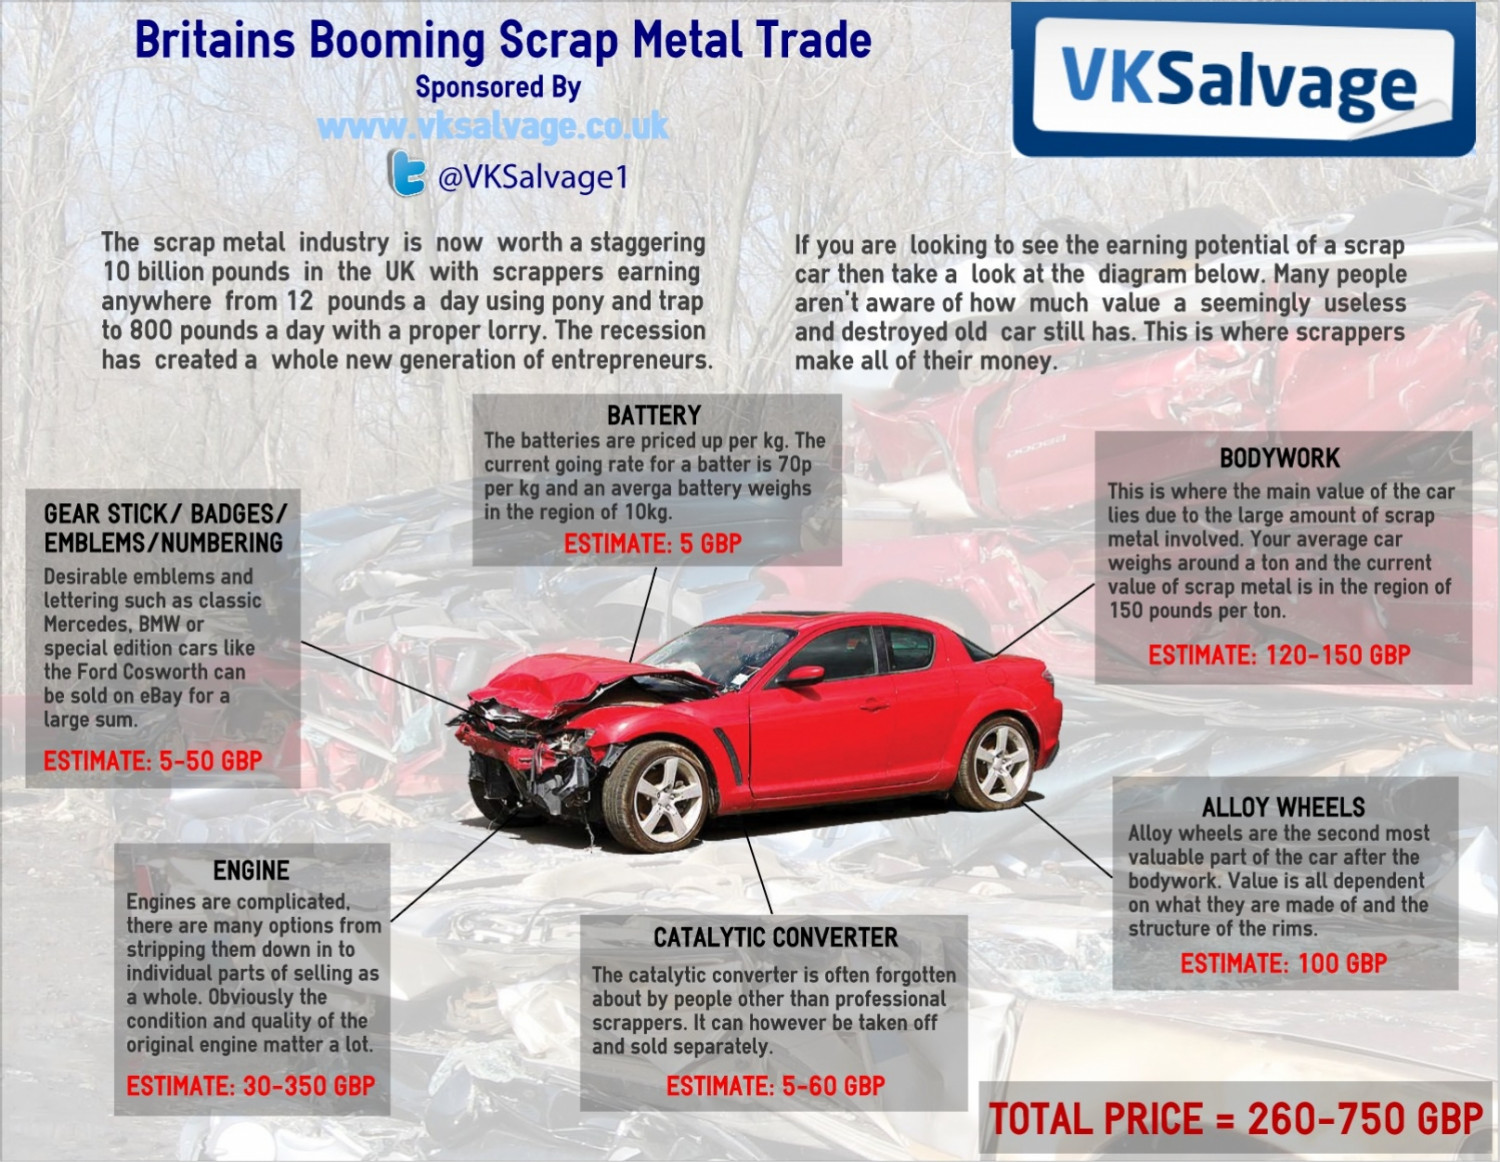 Britains Booming Scrap Metal Trade Infographic